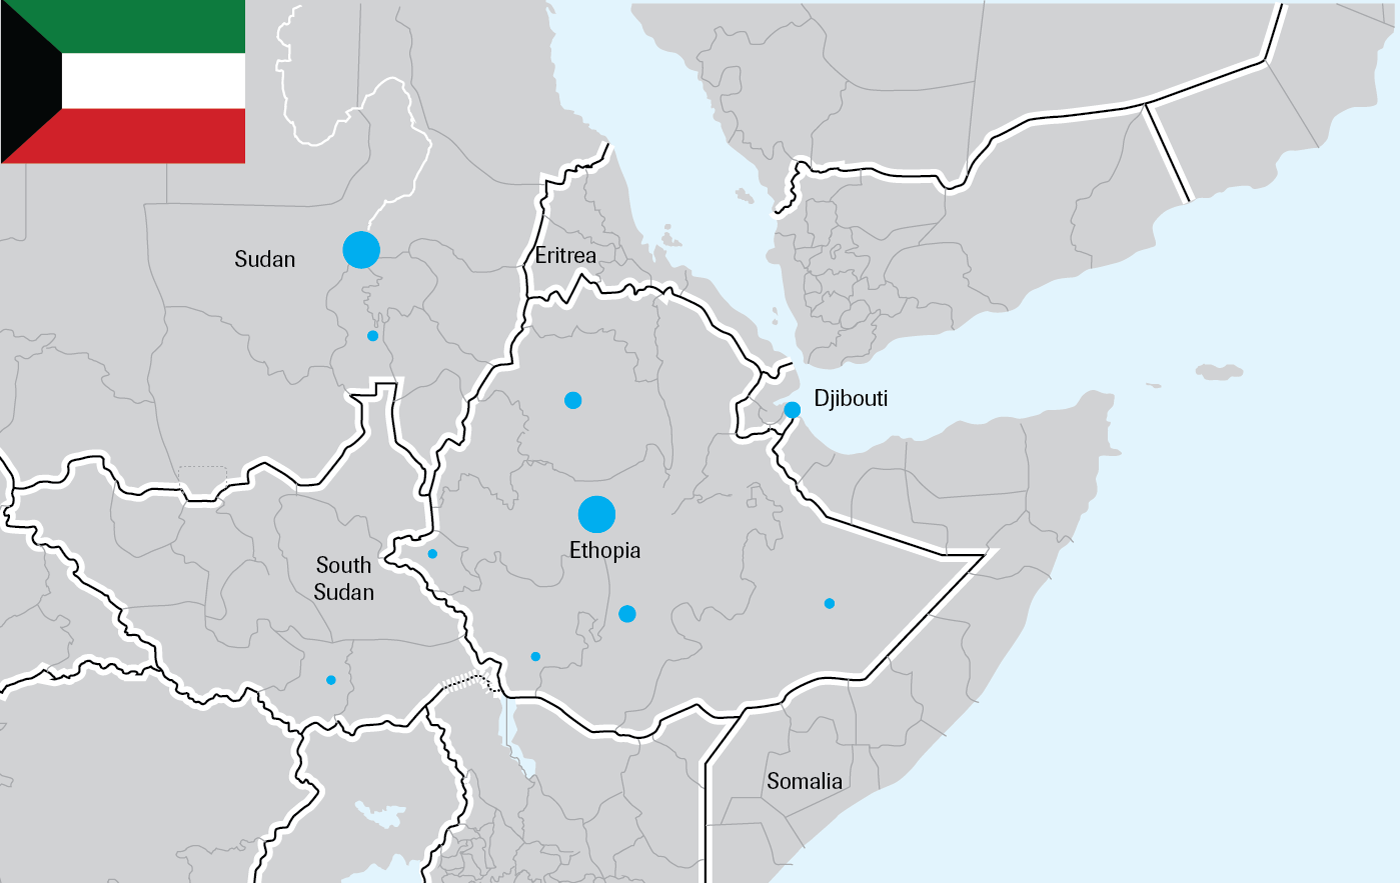 Mapping the extent of Gulf investments and ODA in the Horn of Africa